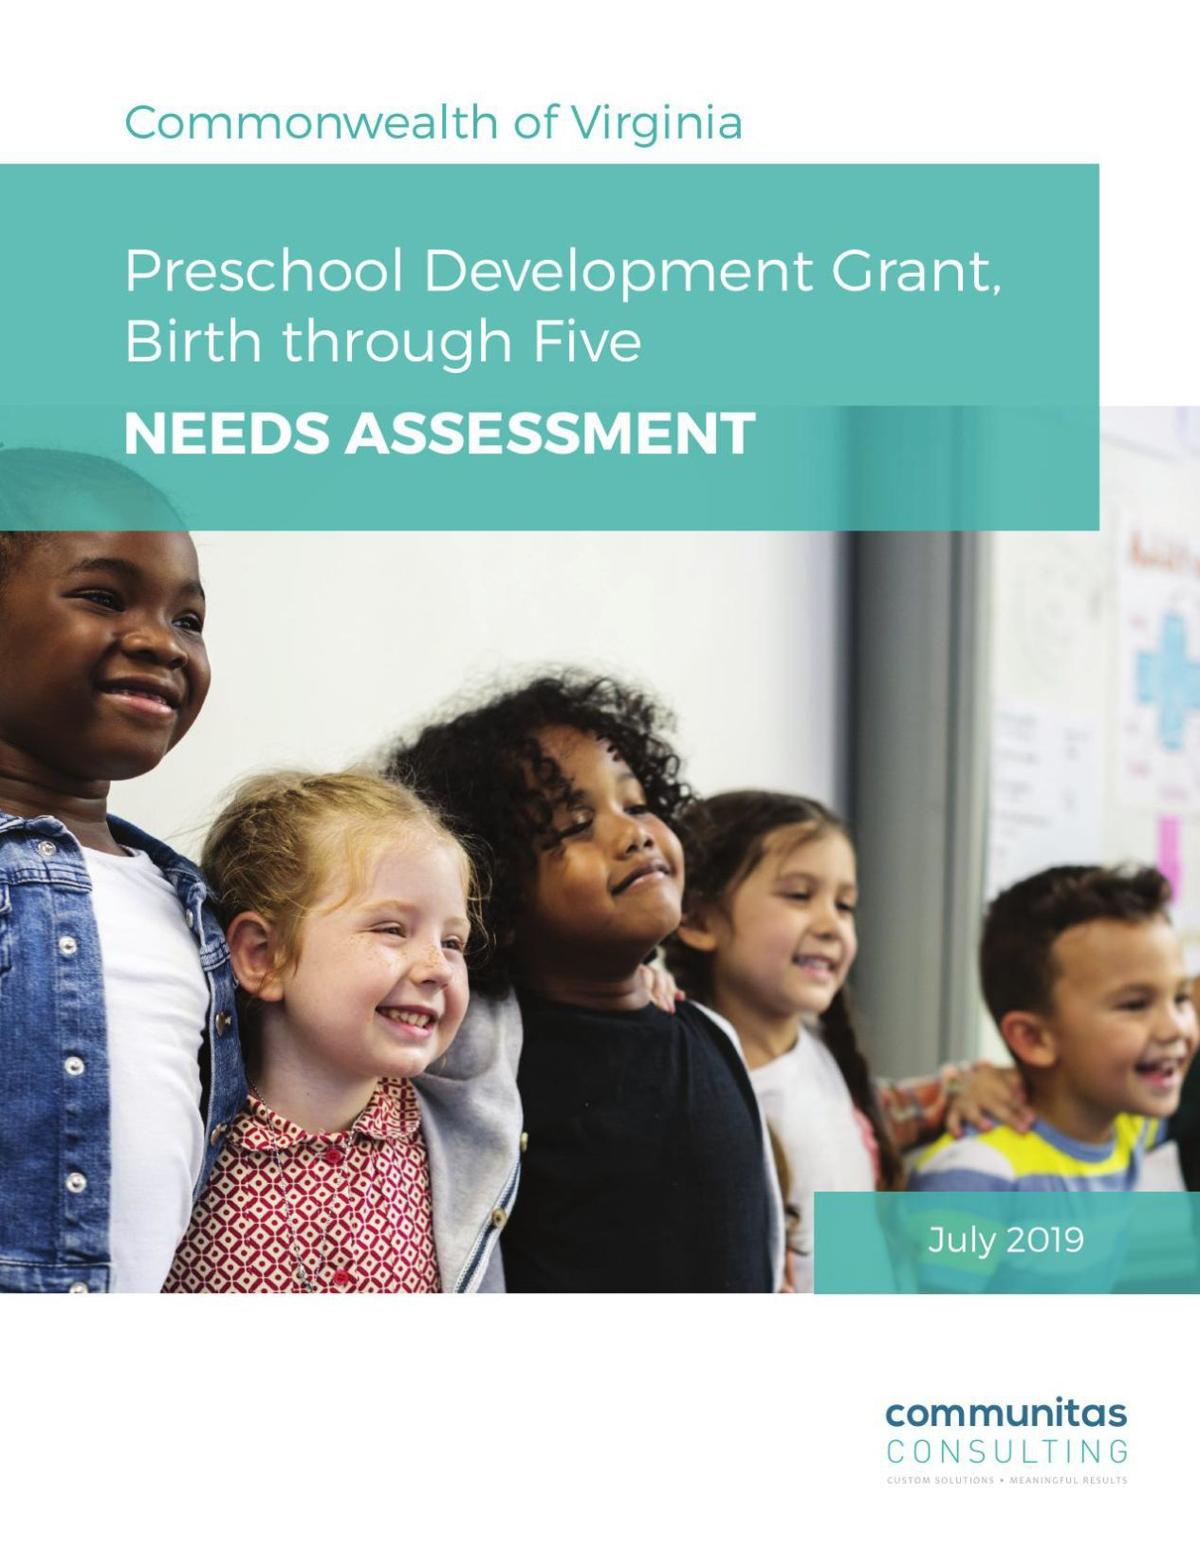 Virginia Early Childhood Needs Assessment